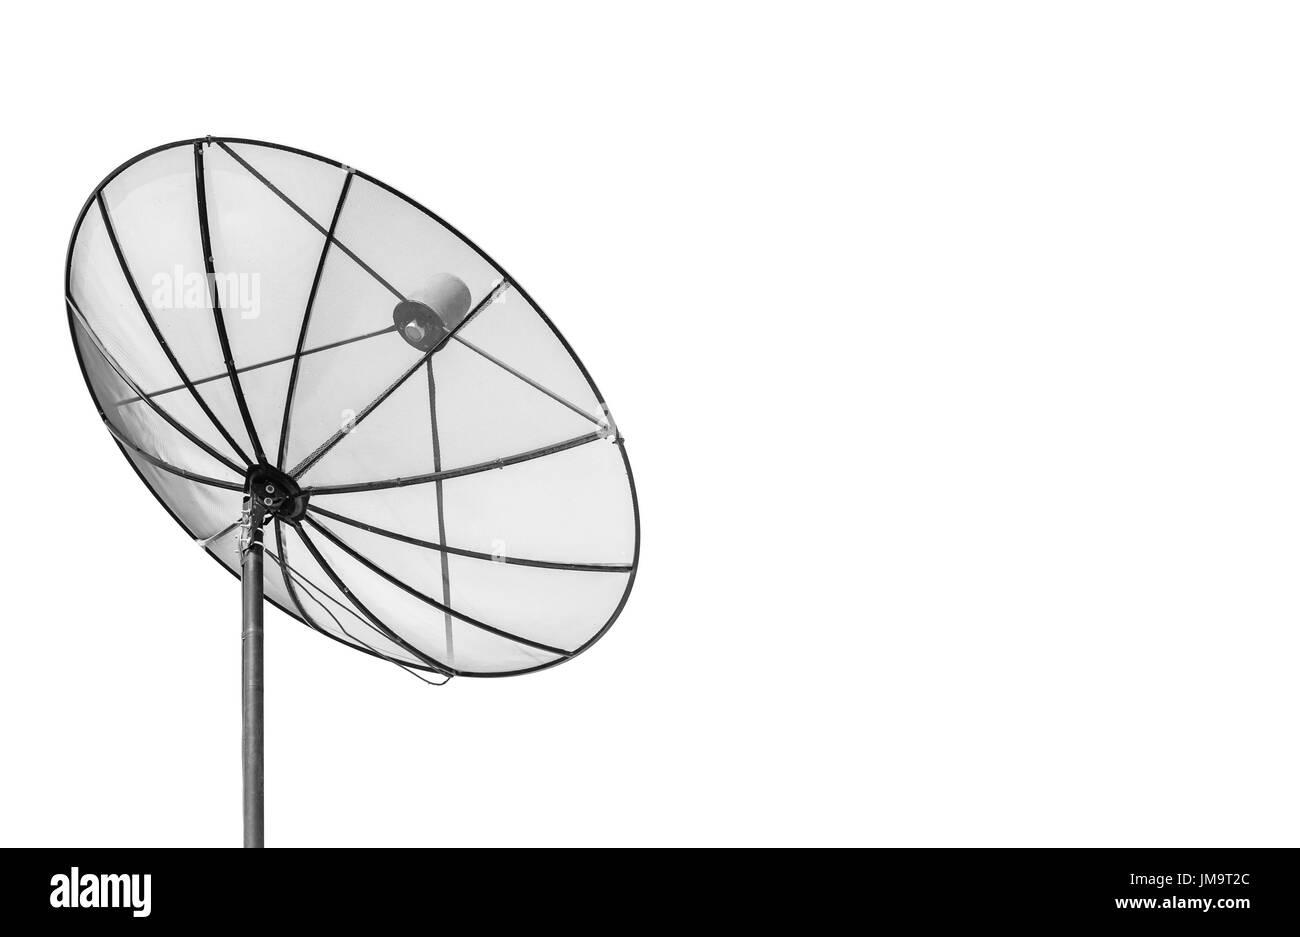 Big Black Satellite Dish isolated on White background with copy space - Stock Image